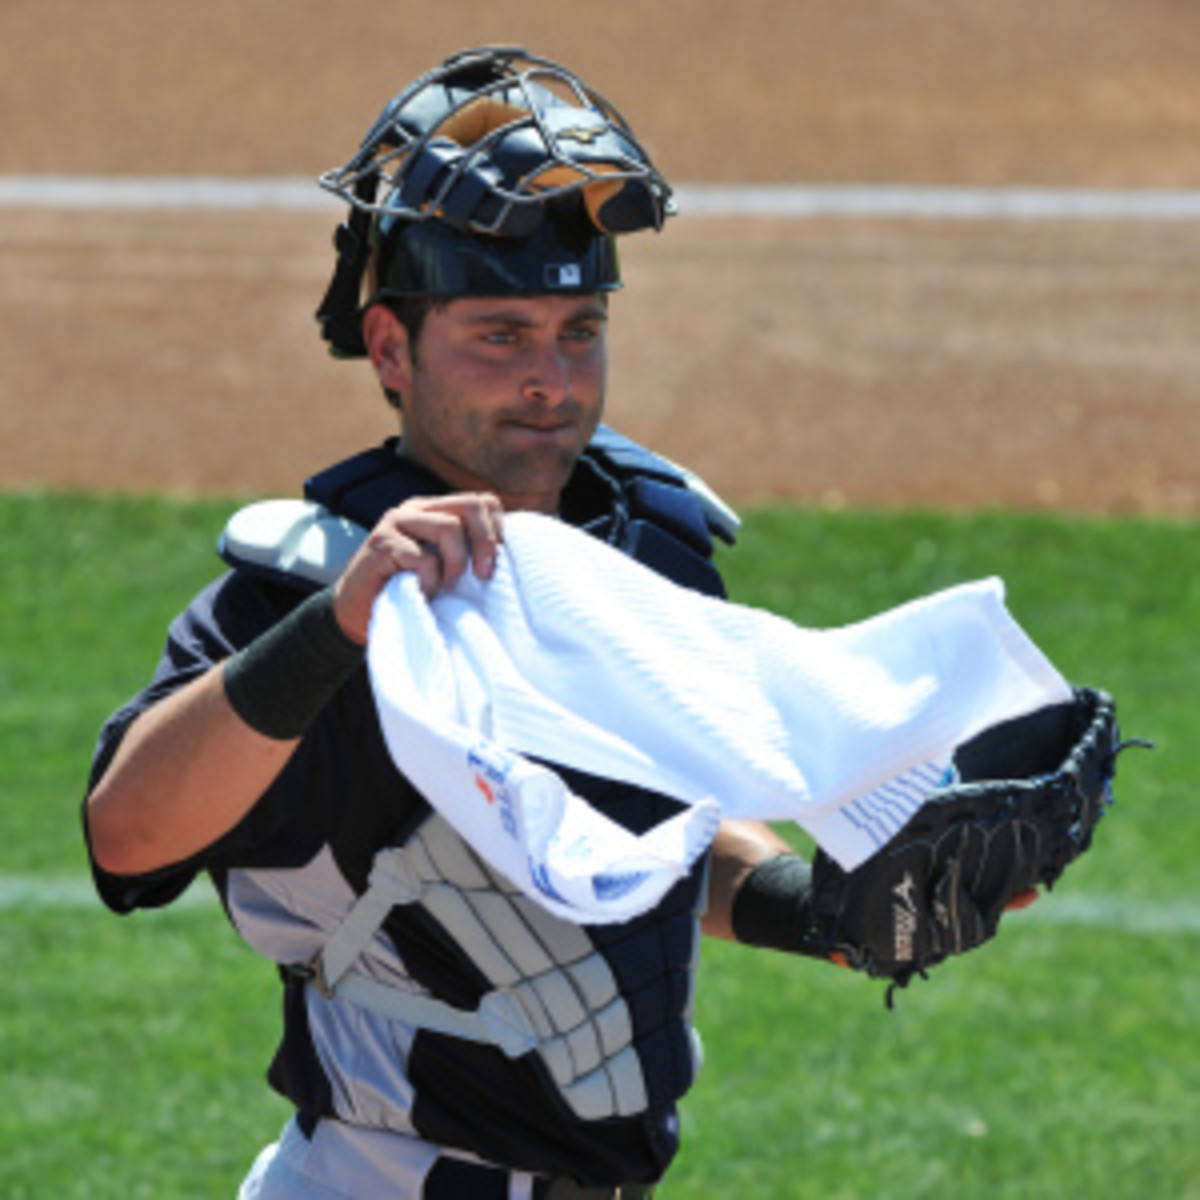 Francisco Cervelli gave conflicting statements on his dealings with Biogenesis. (Al Messerschmidt/Getty Images)